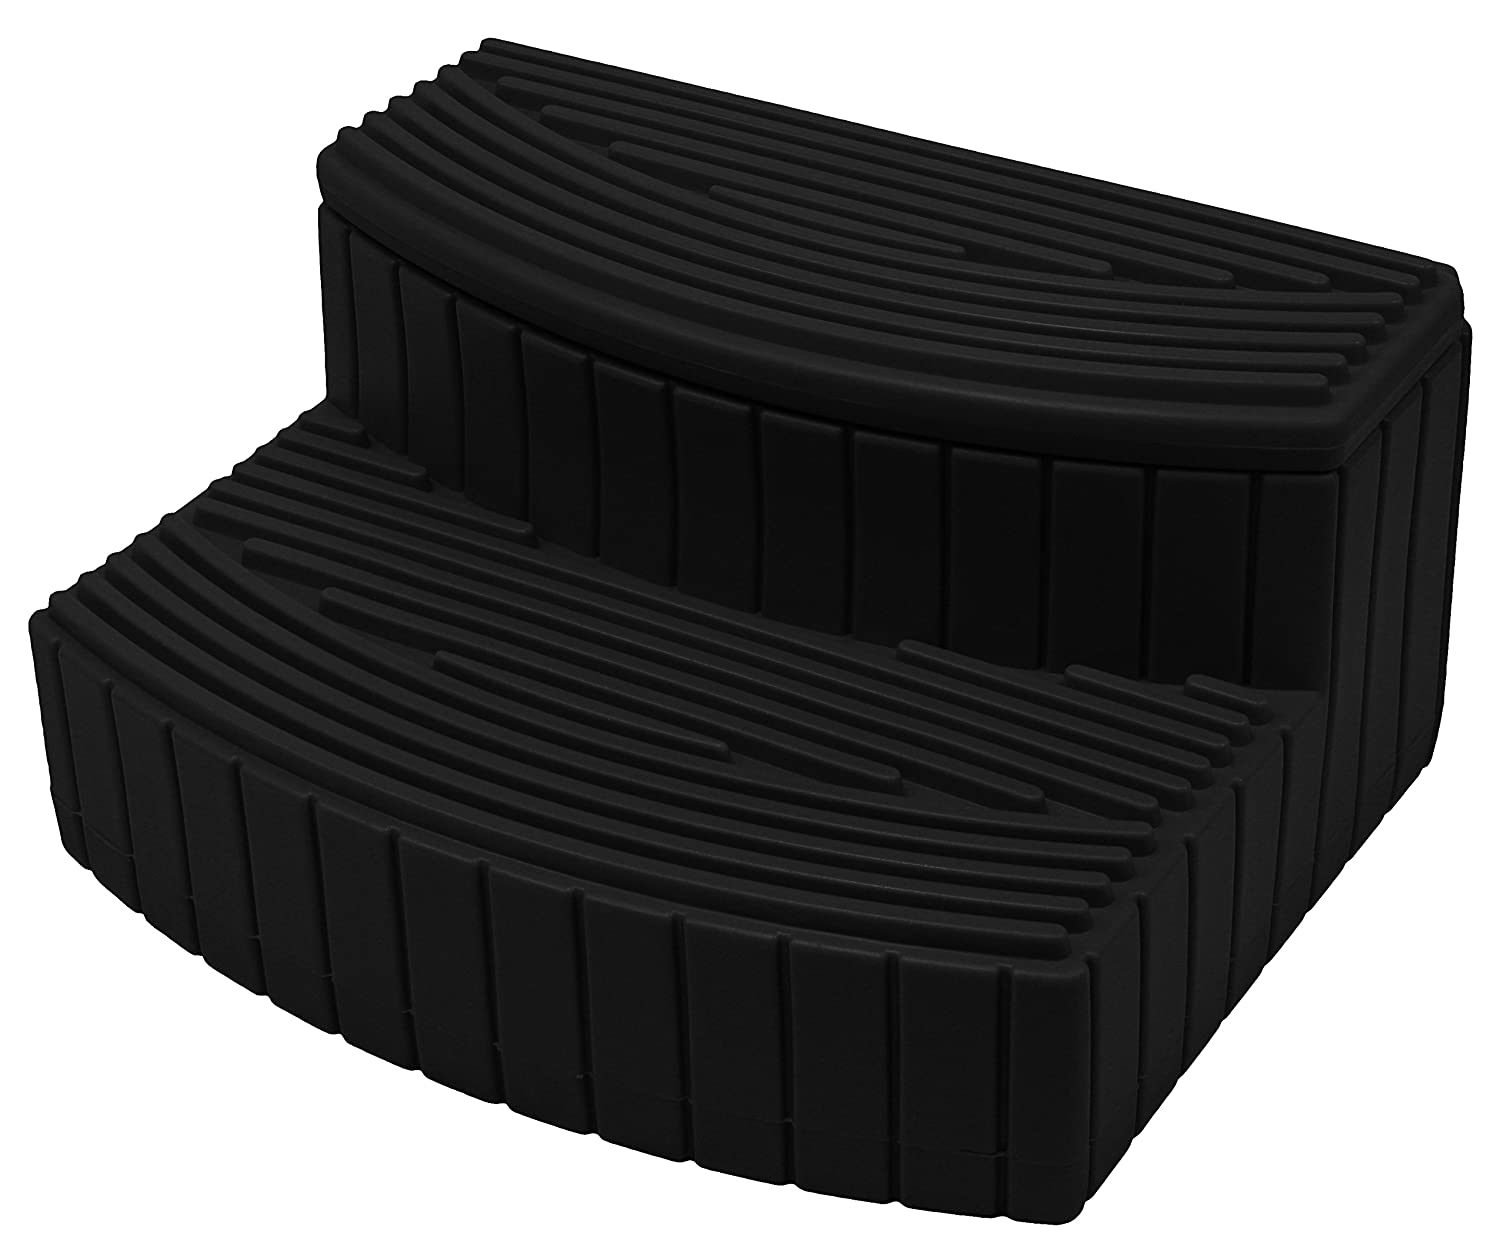 Good Ideas SSTEP-BLK Store-A-Step for Storing Supplies, Black